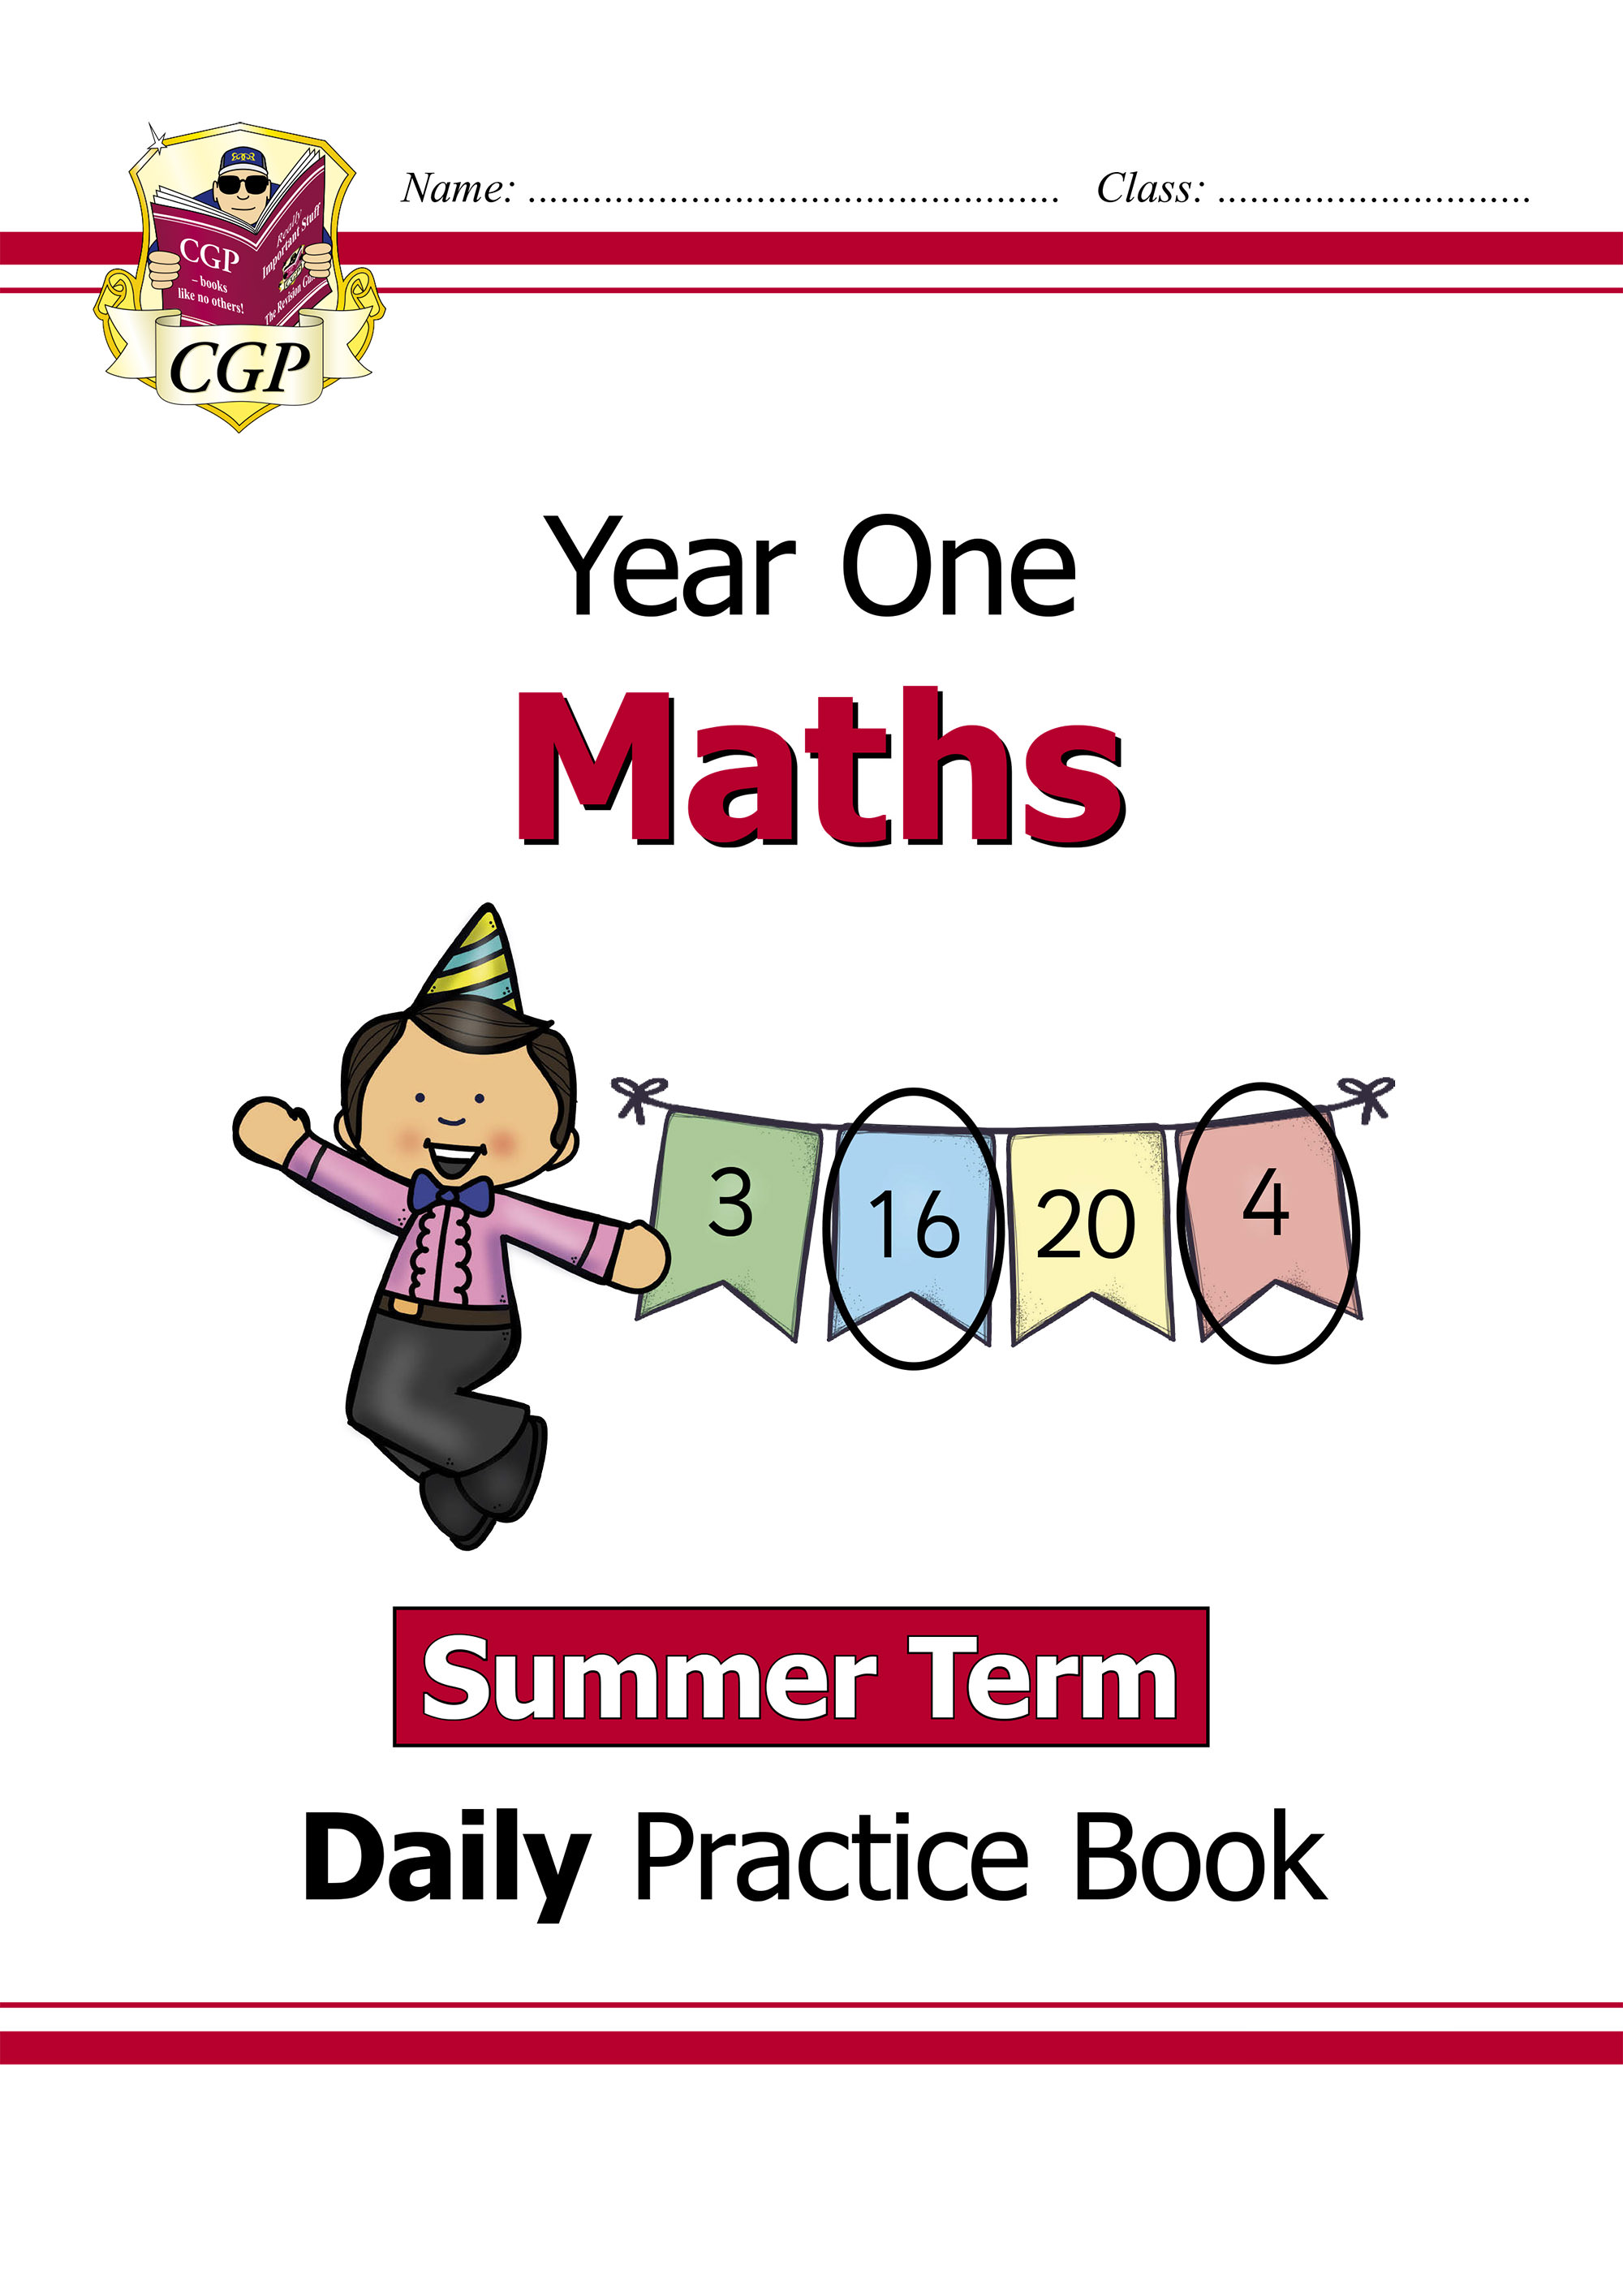 M1WSU11D - New KS1 Maths Daily Practice Book: Year 1 - Summer Term Online Edition